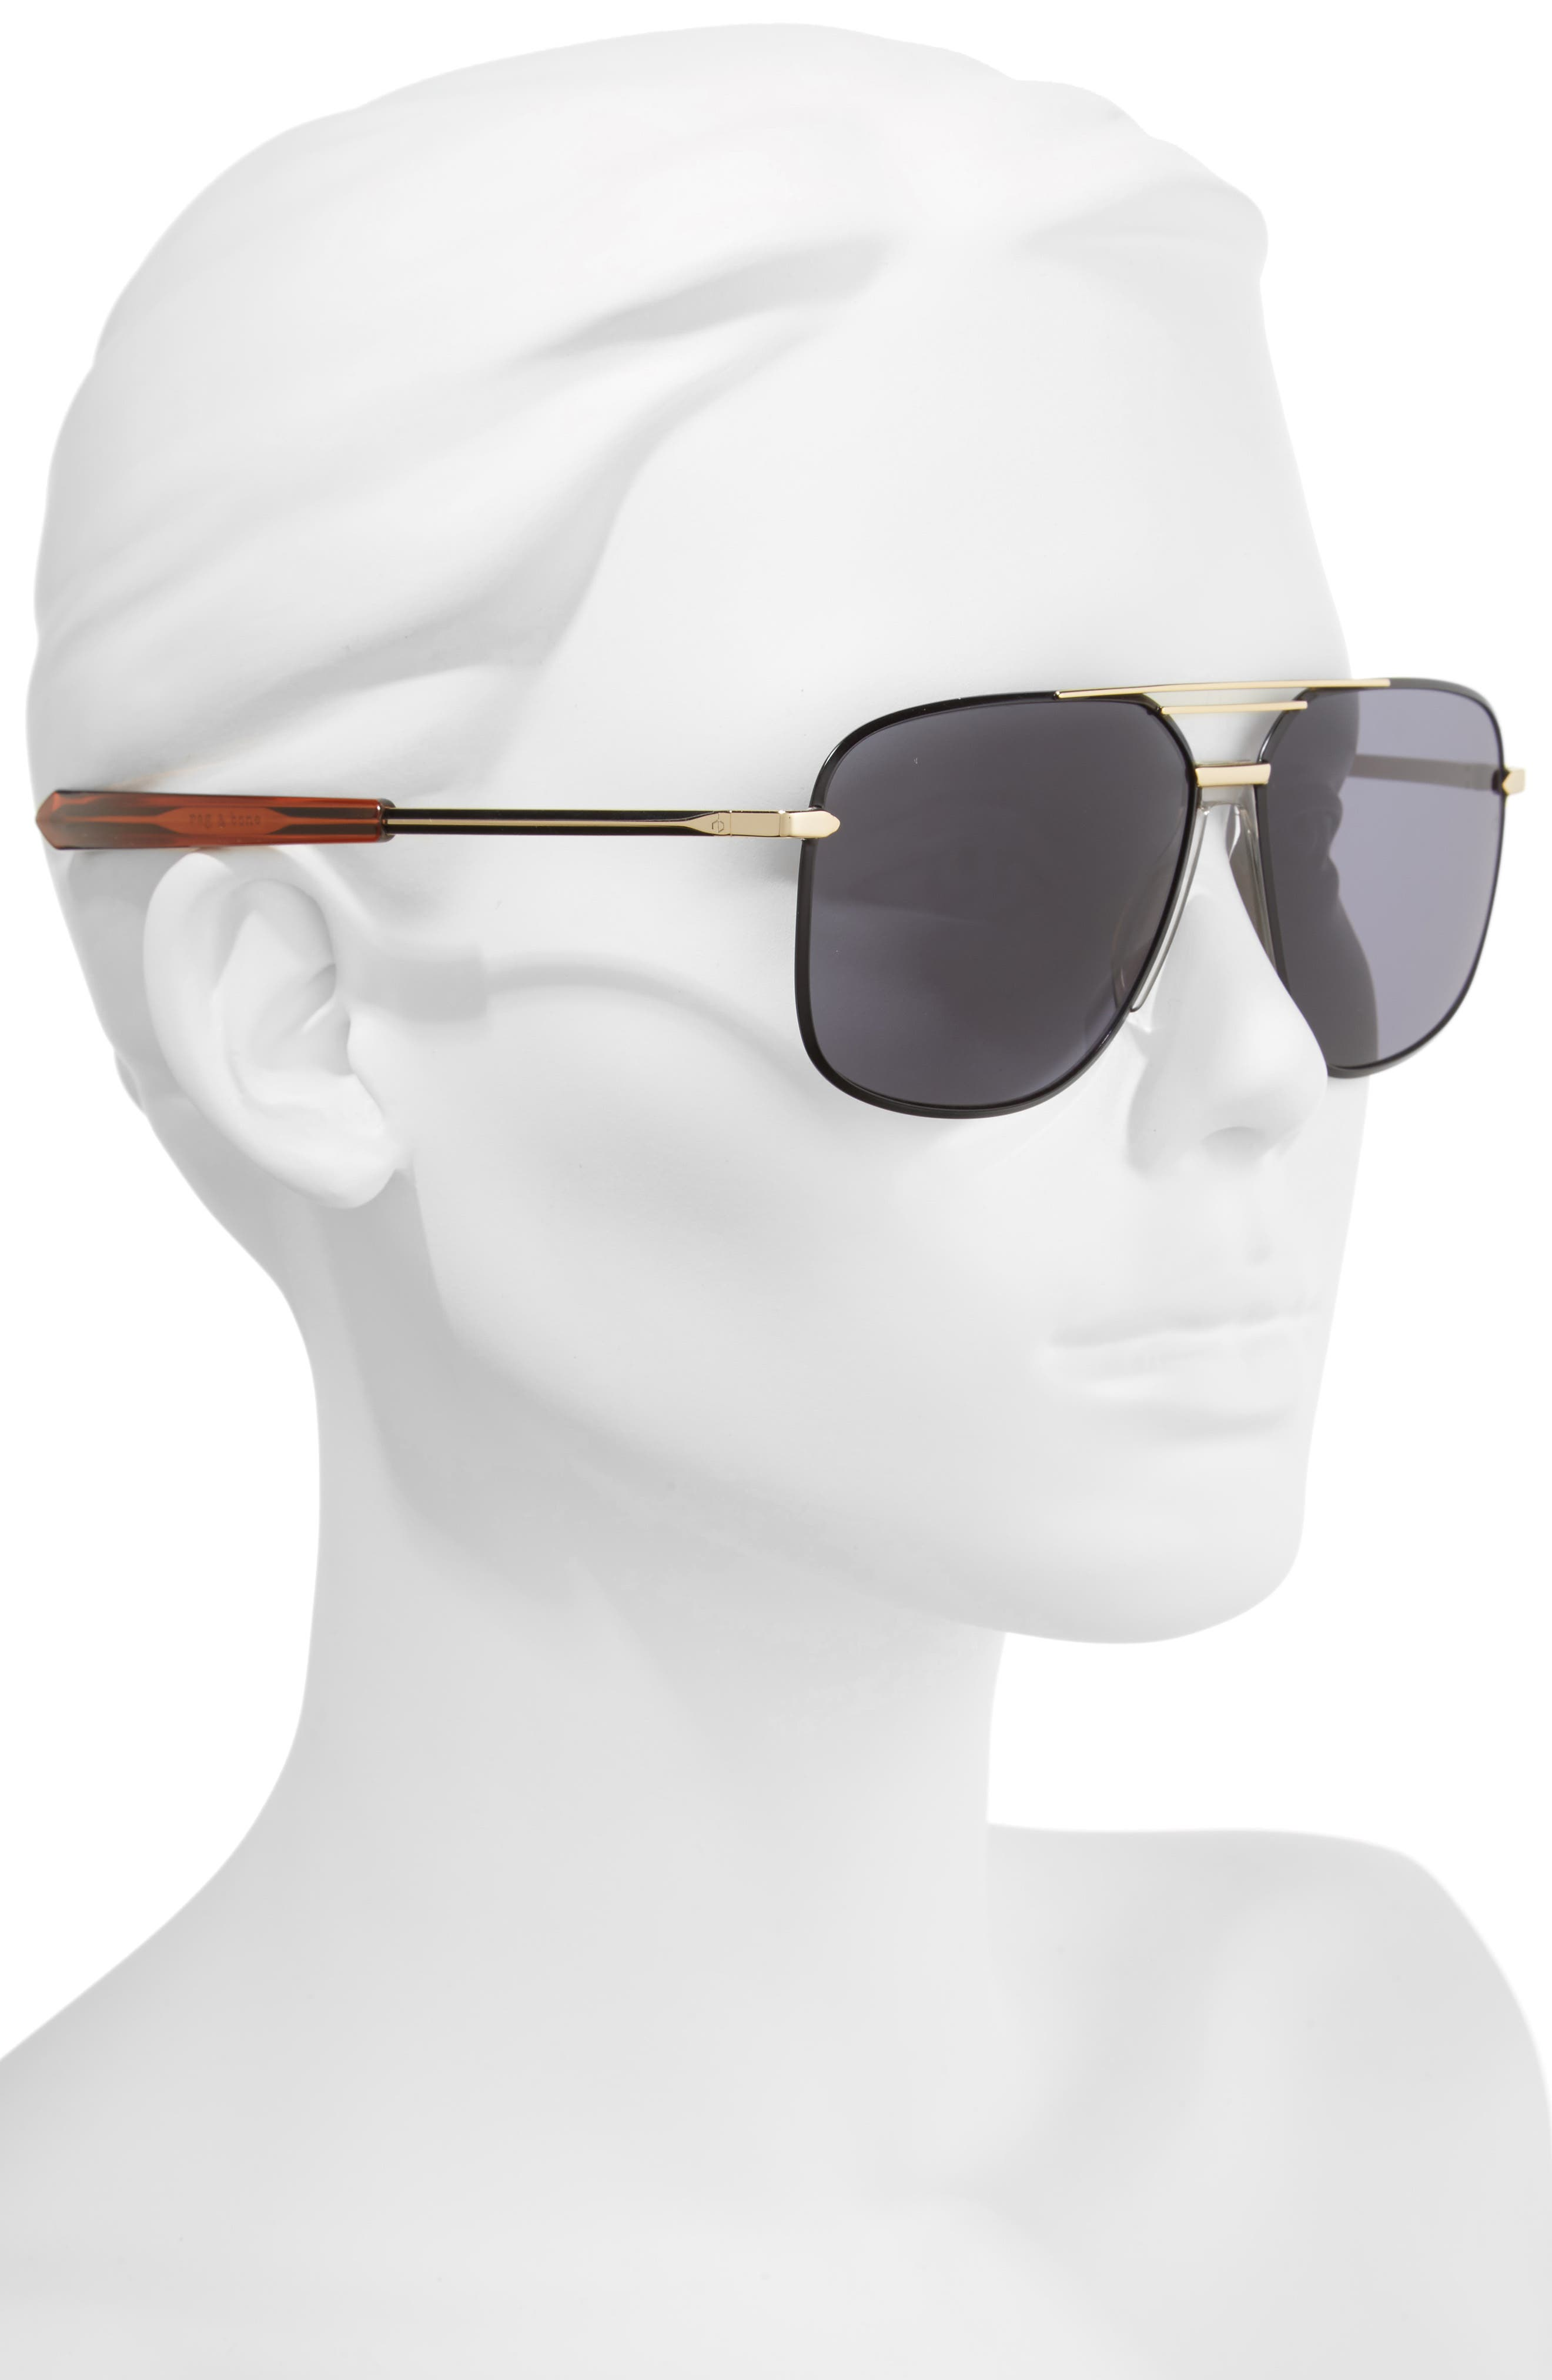 RAG & BONE, Caravan 62mm Oversize Aviator Sunglasses, Alternate thumbnail 2, color, BLACK/ GOLD